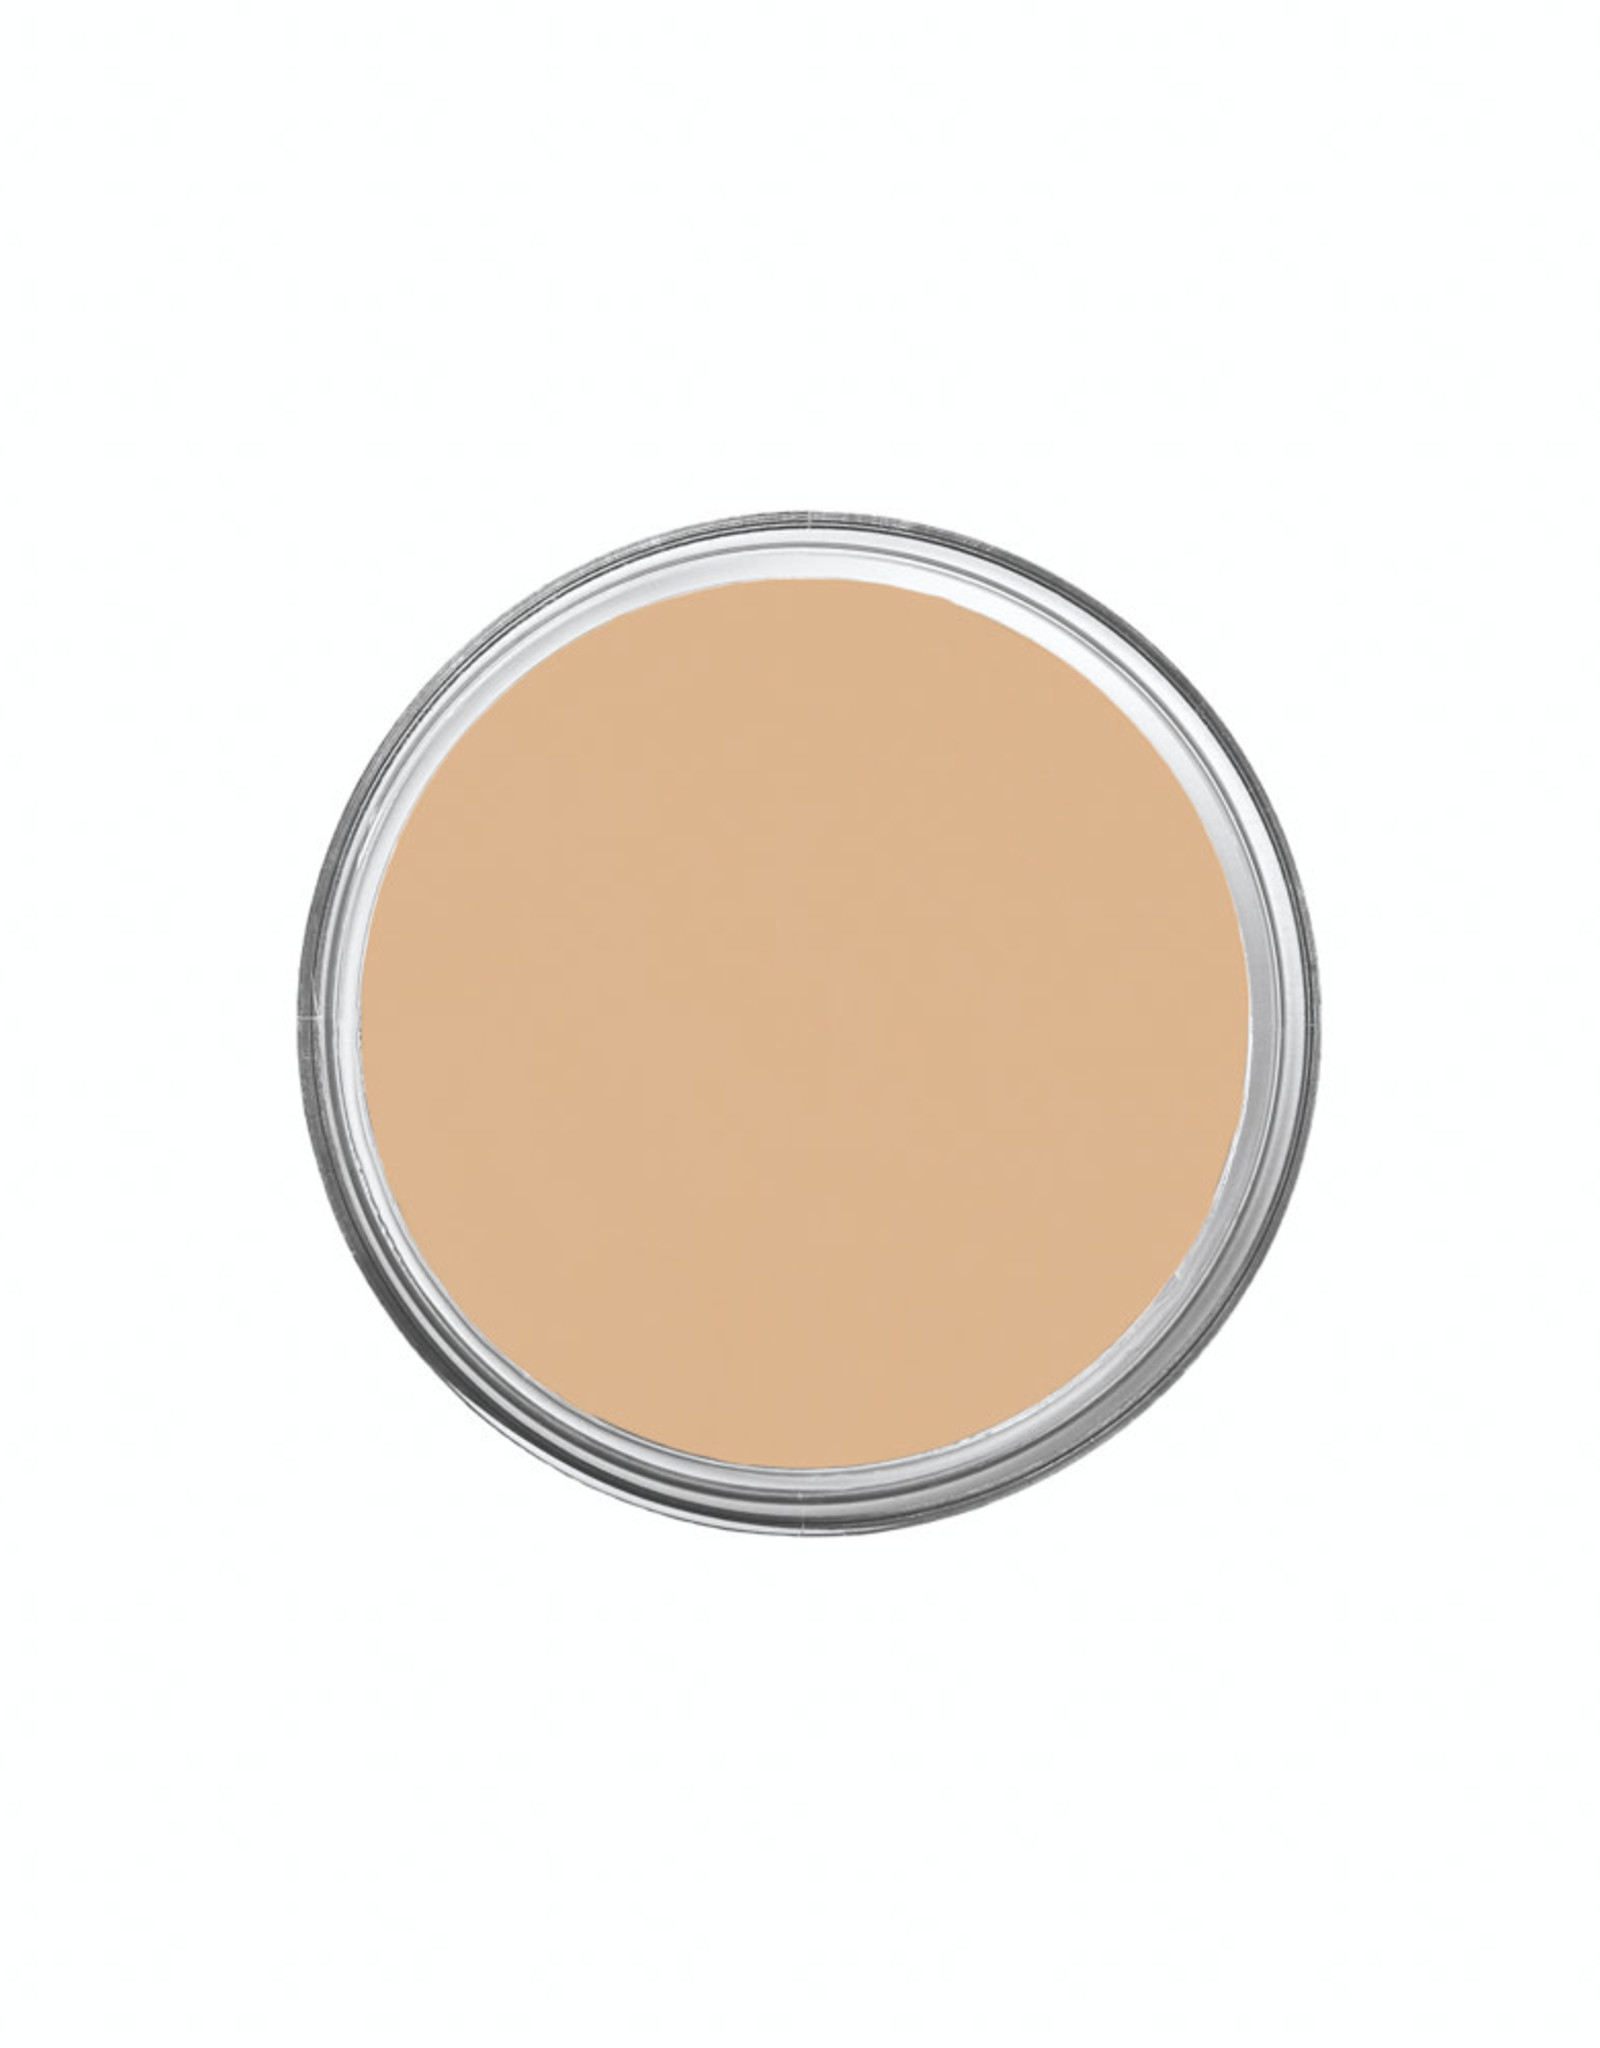 Ben Nye FOUNDATION-MATTE HD, BARE BEIGE, .5 OZ